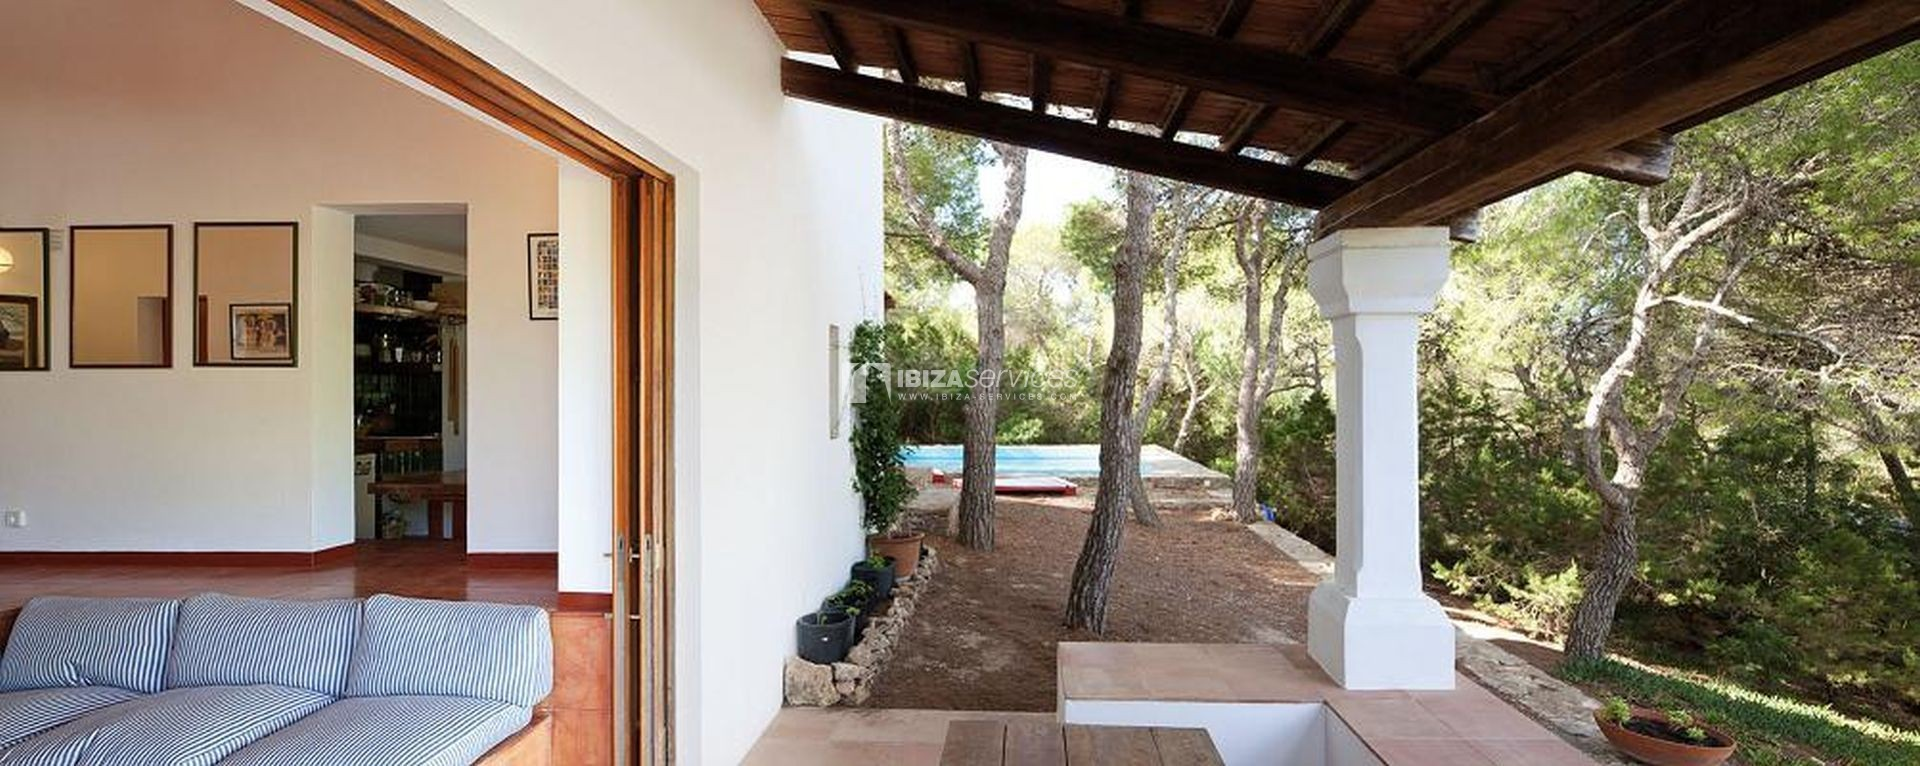 4 bedroom Villa for rent in Formentera perspectiva 30